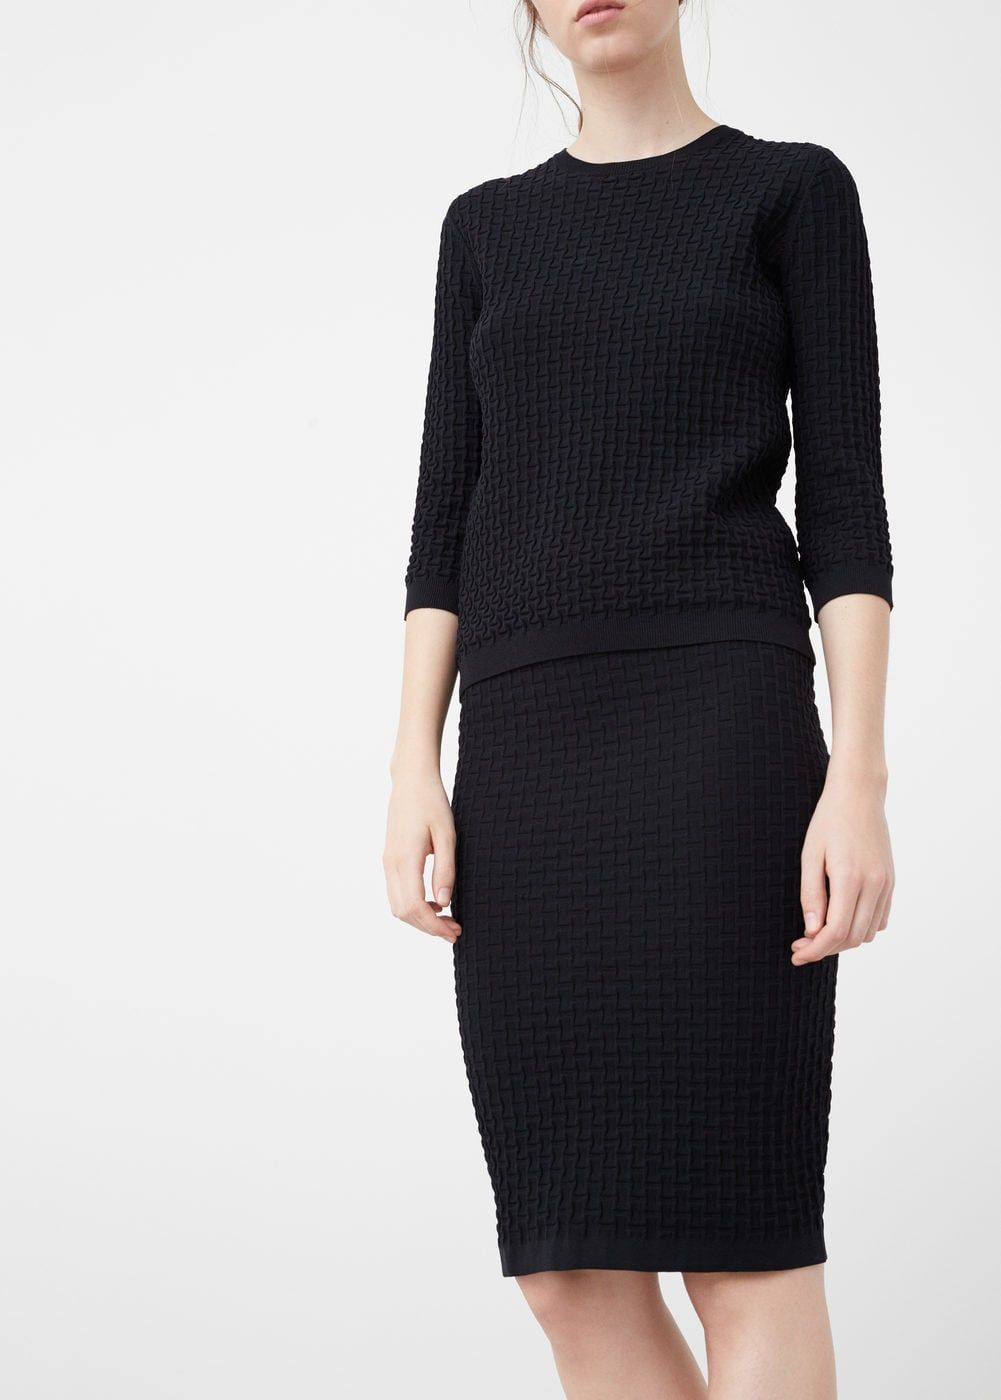 Textured pencil skirt pencil skirts pencil and skirts